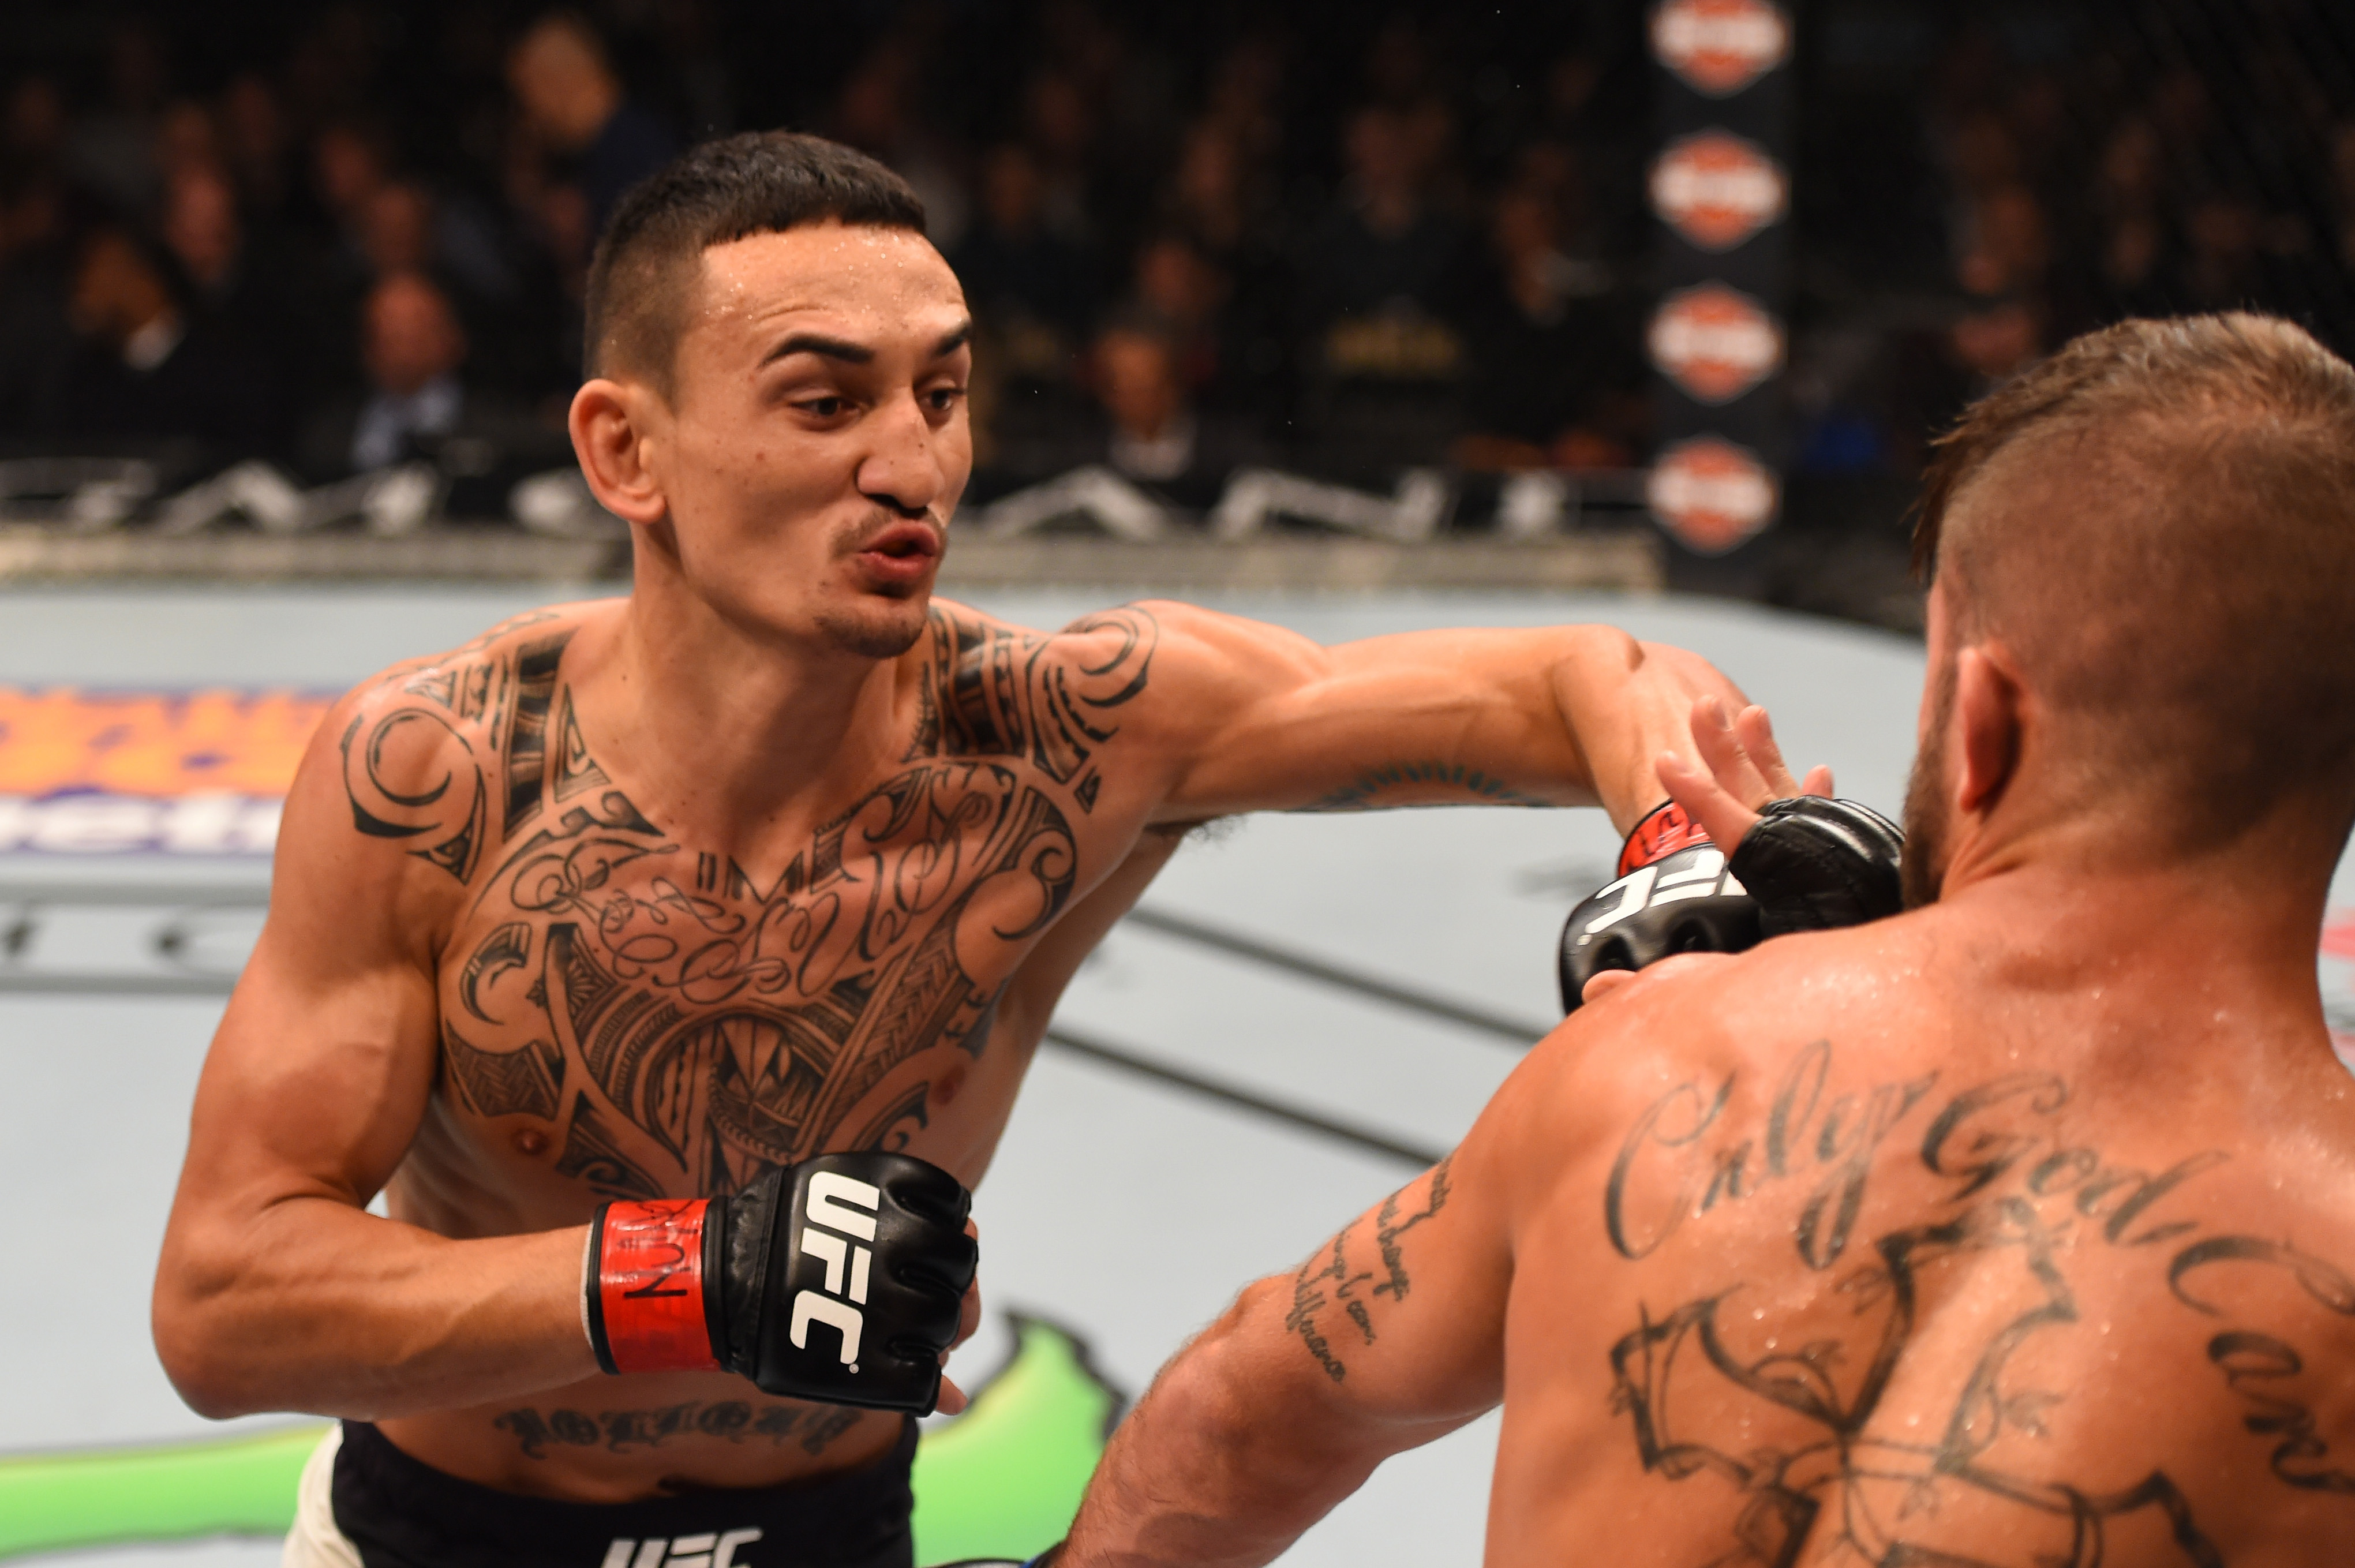 UFC: Max Holloway responds about his Twitter war with Conor McGregor - Max Holloway